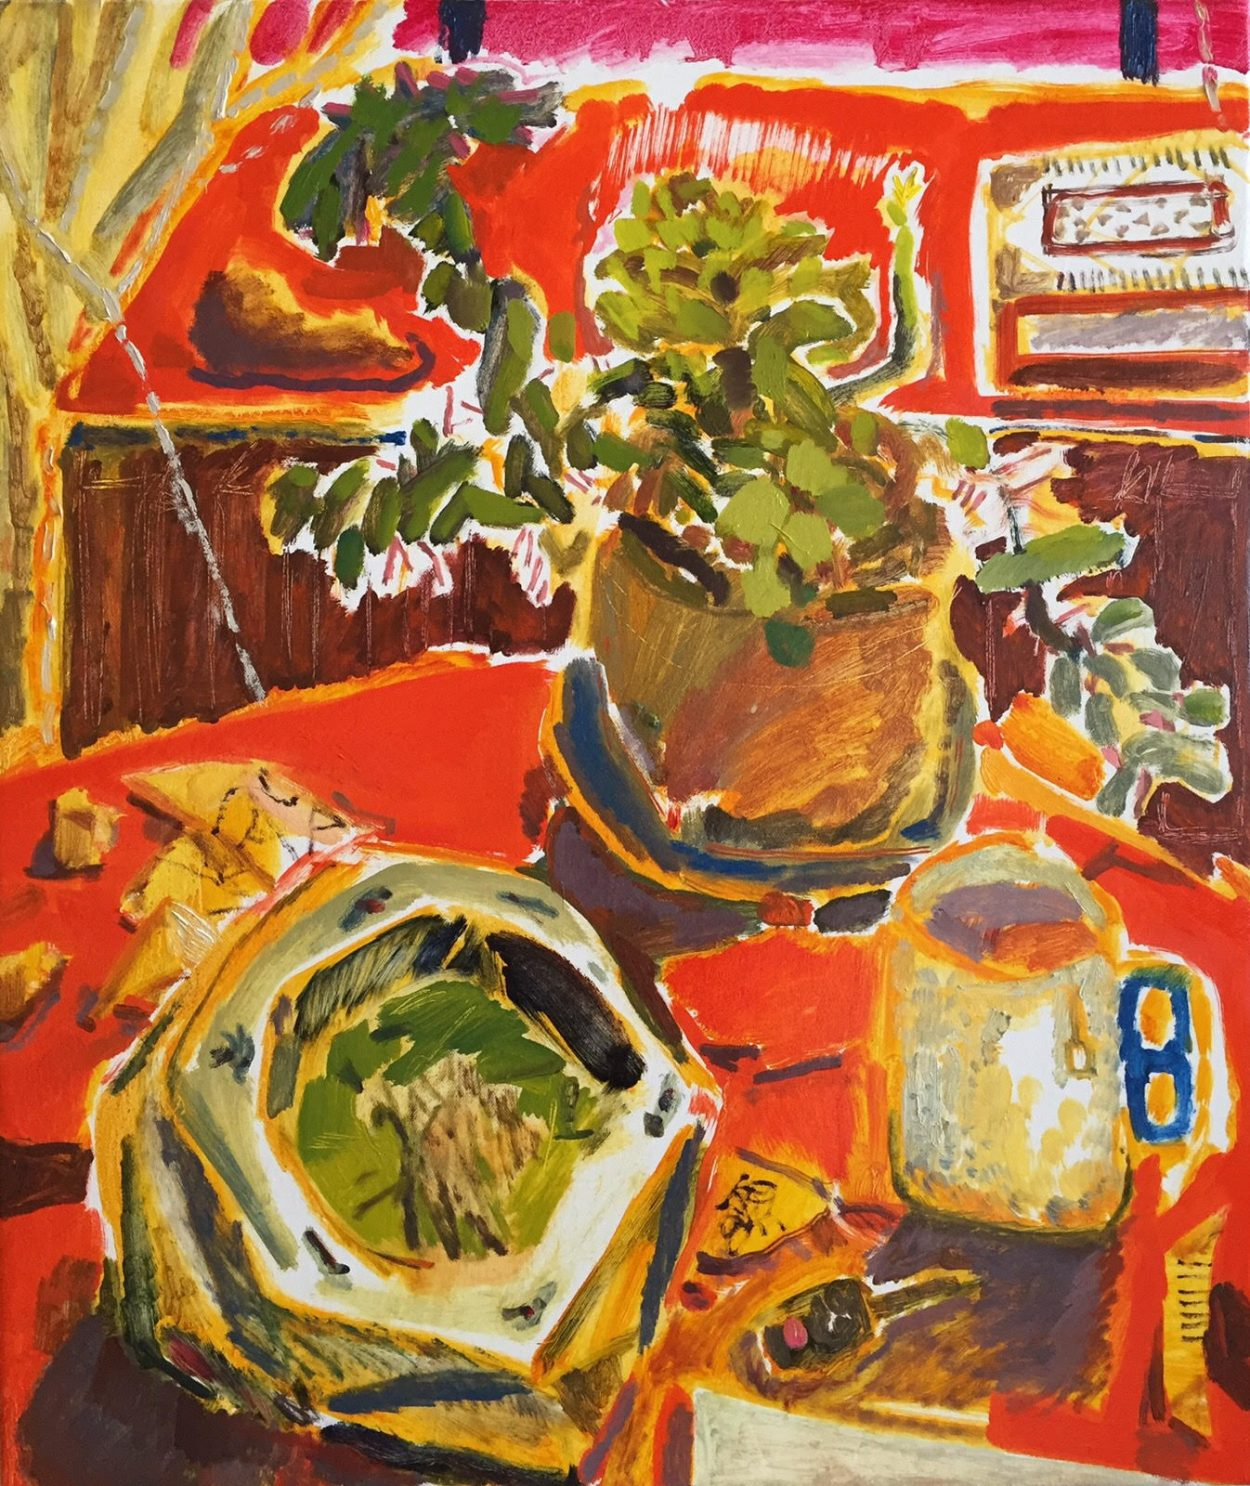 A painting of two plants and a mug on a table with a red tablecloth and a red window.